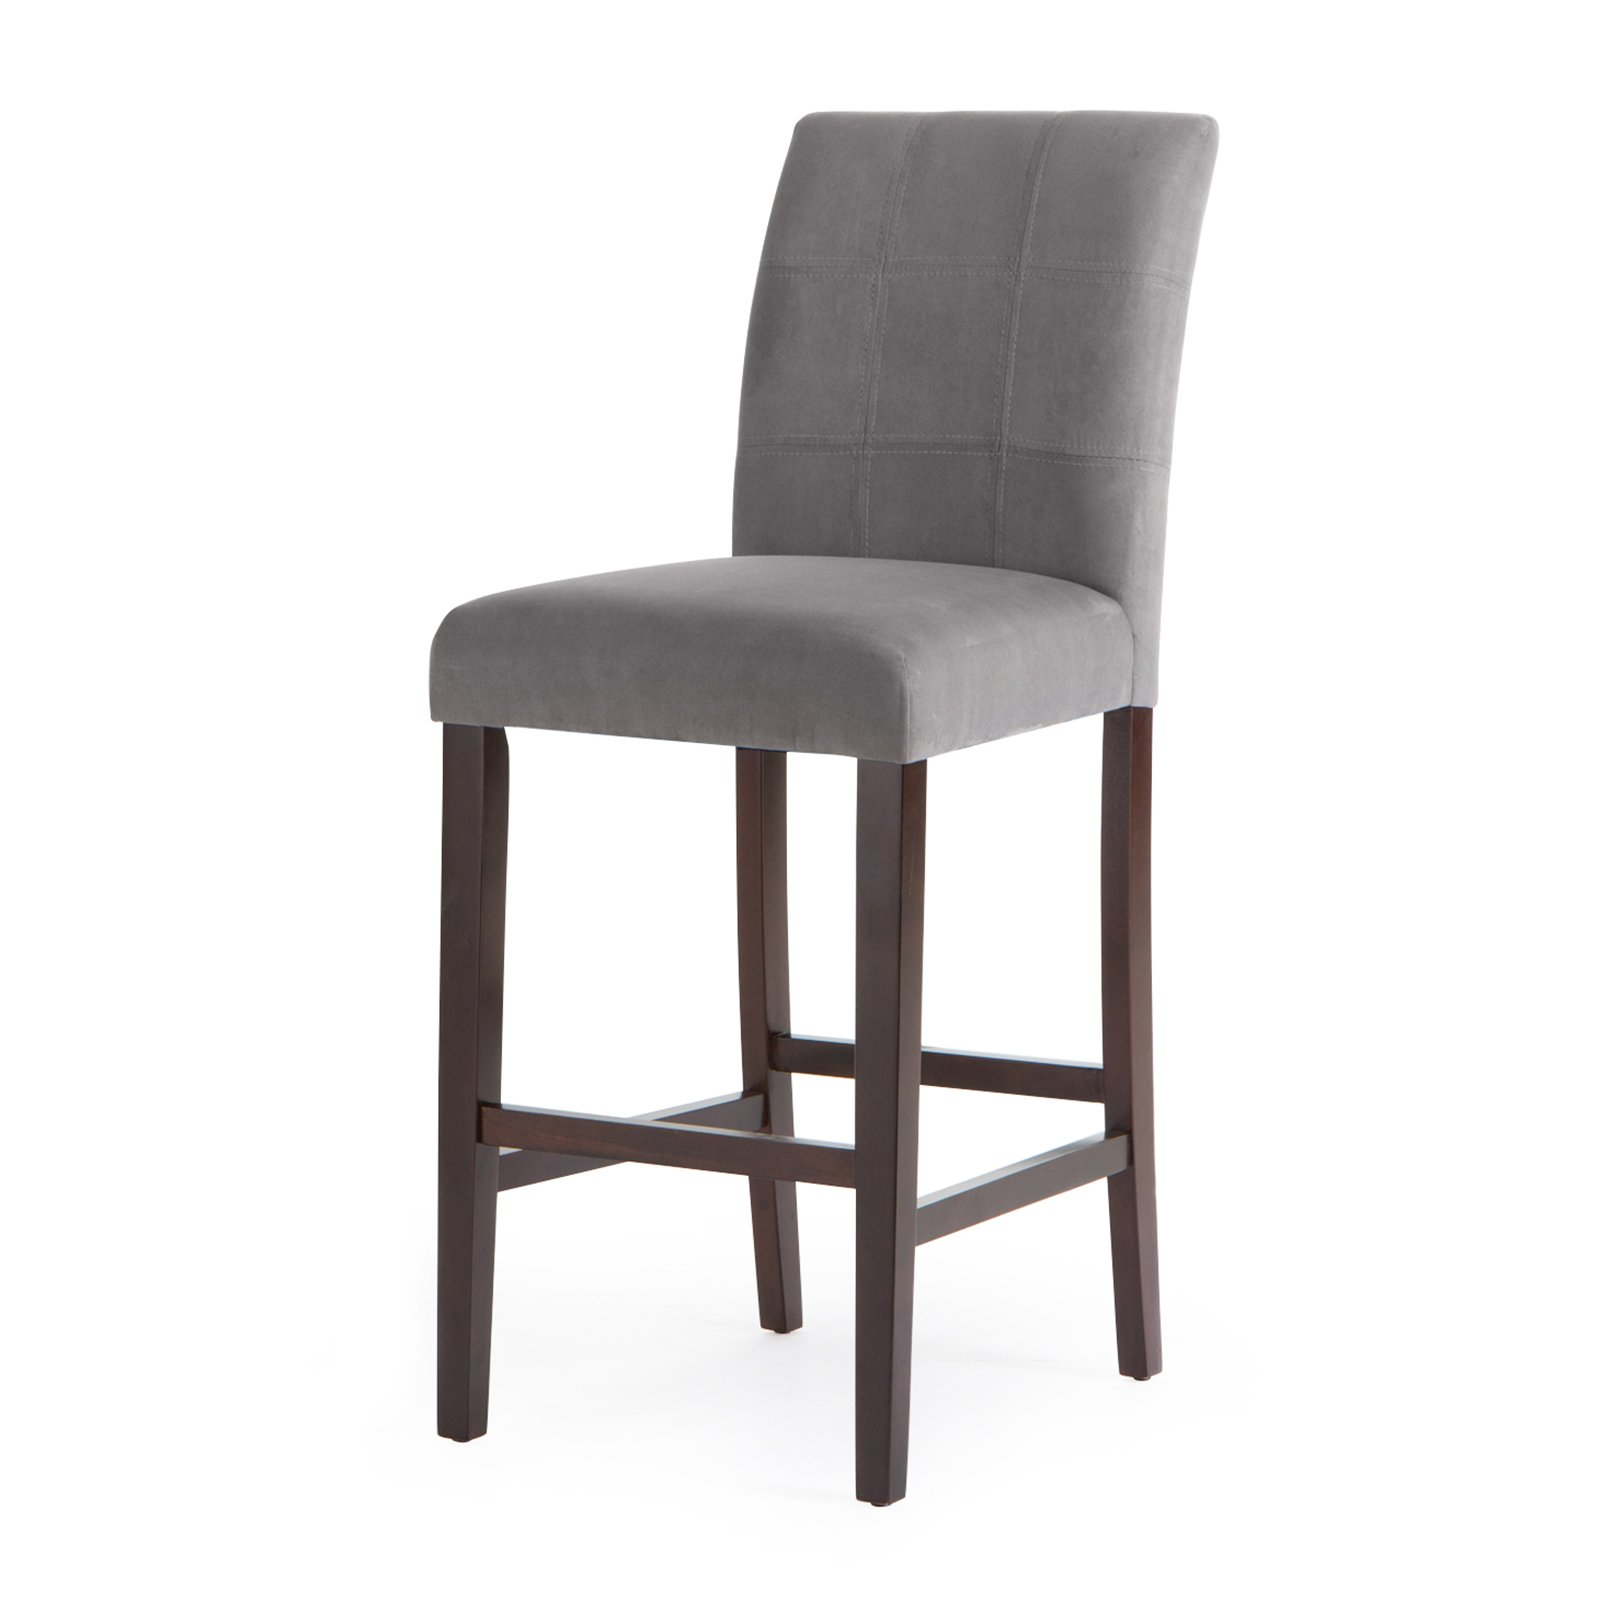 bar stool chairs barber chair square one stools walmart